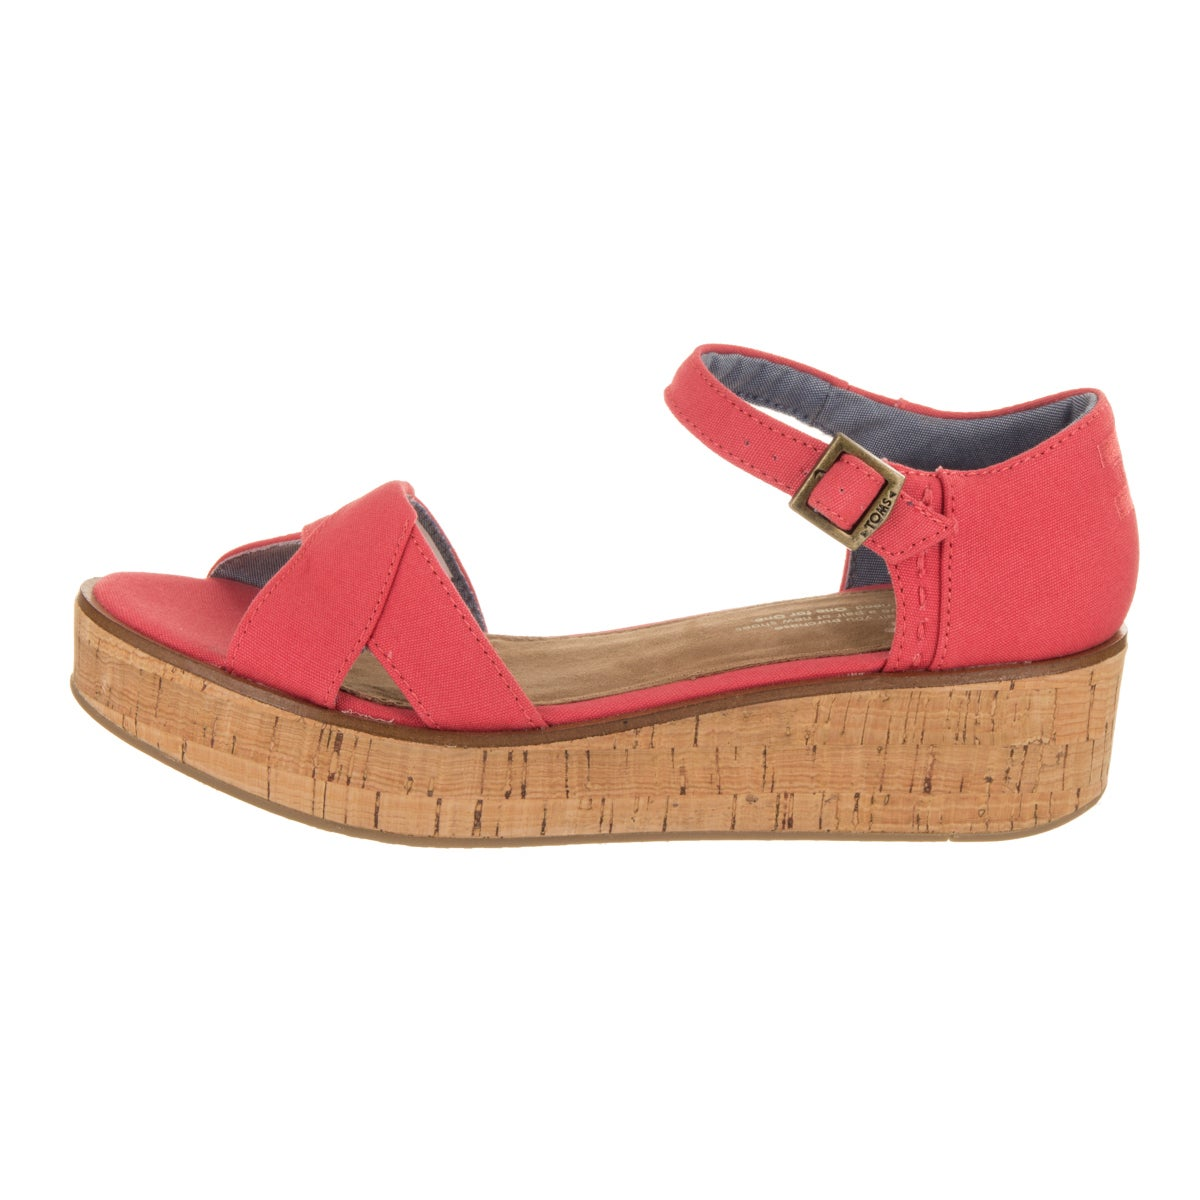 d779ca3d91f Shop Toms Women s Harper Wedge Sandal - Free Shipping Today - Overstock -  16739541